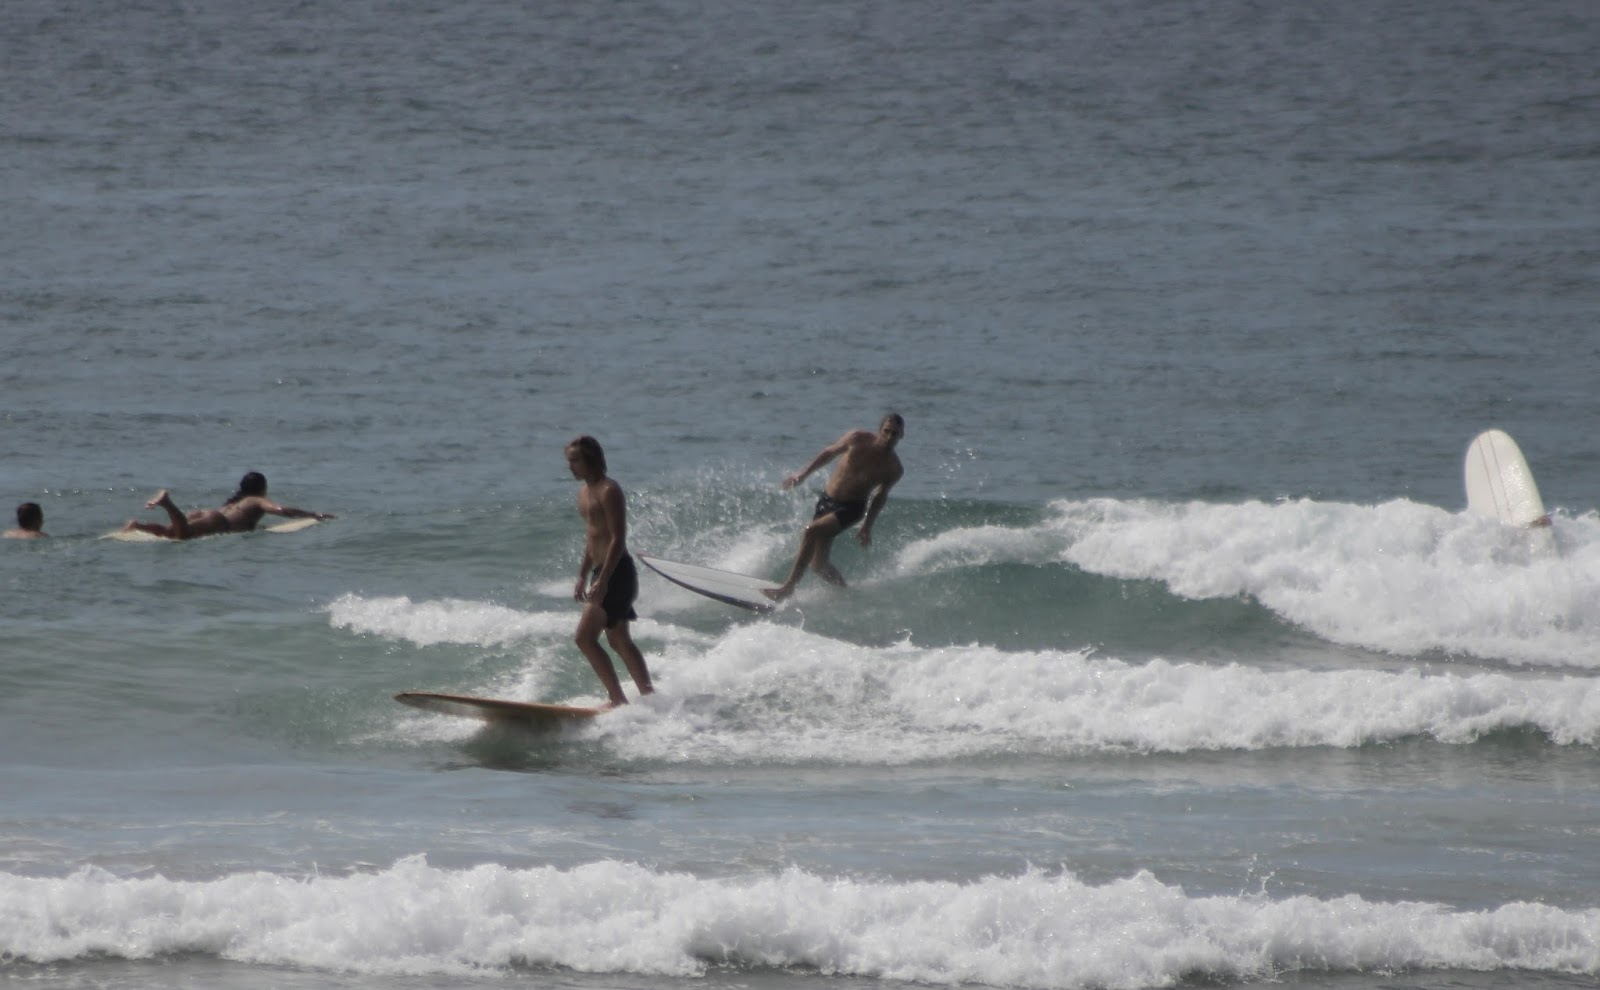 11-03-2016-australia-siebert-surfboards-13